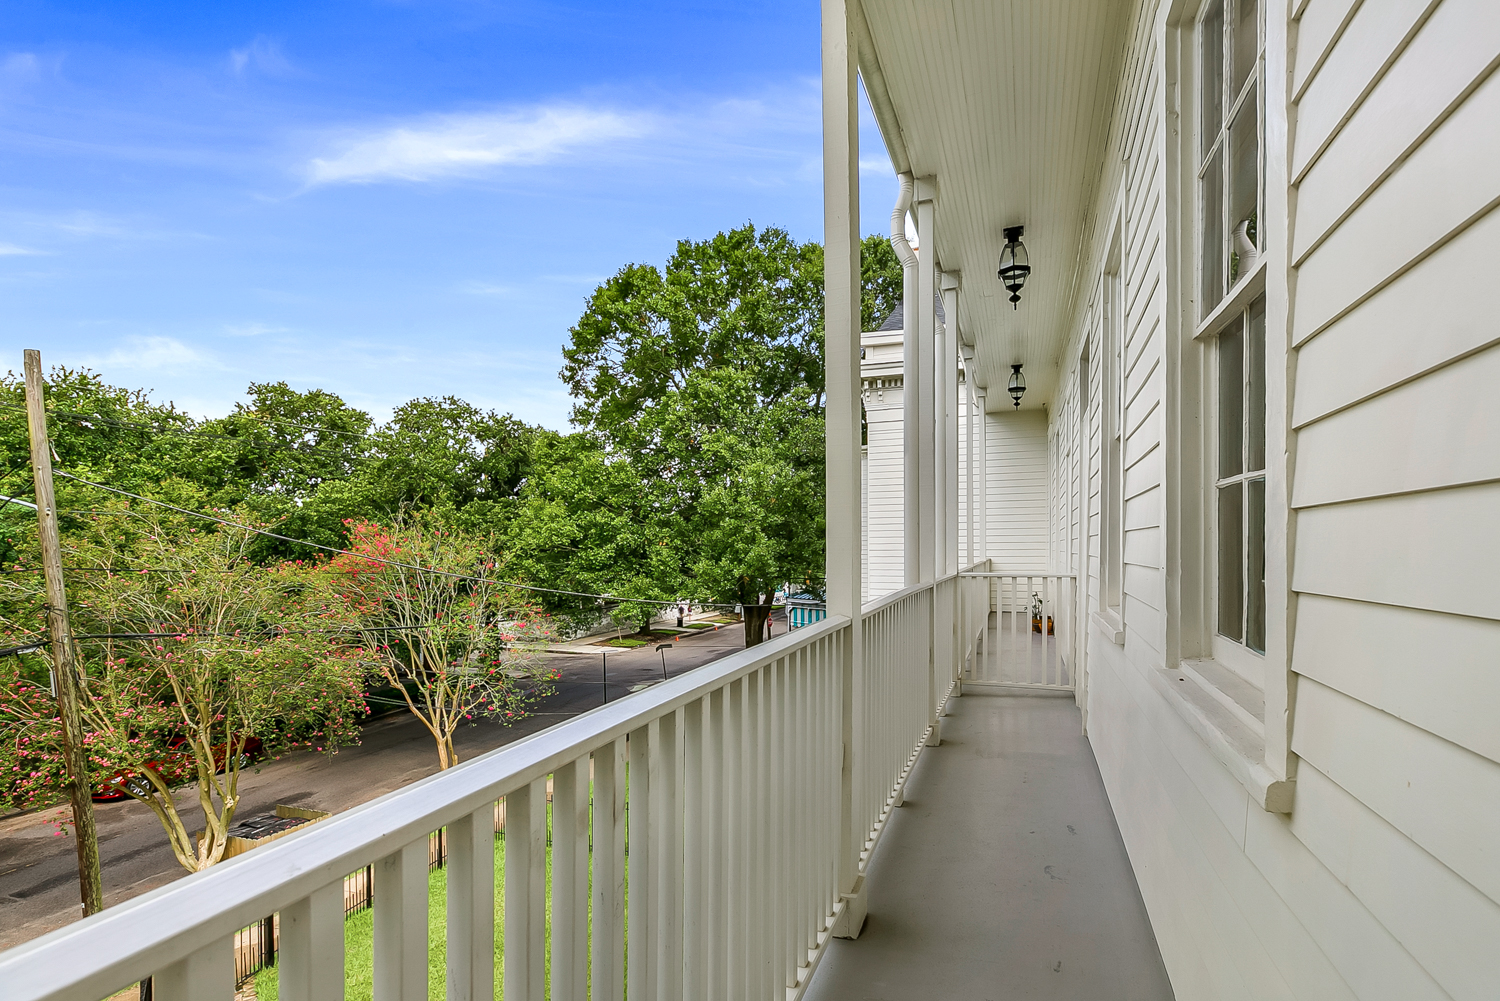 Garden District, Apartment, 1 beds, 1.0 baths, $2800 per month New Orleans Rental - devie image_11